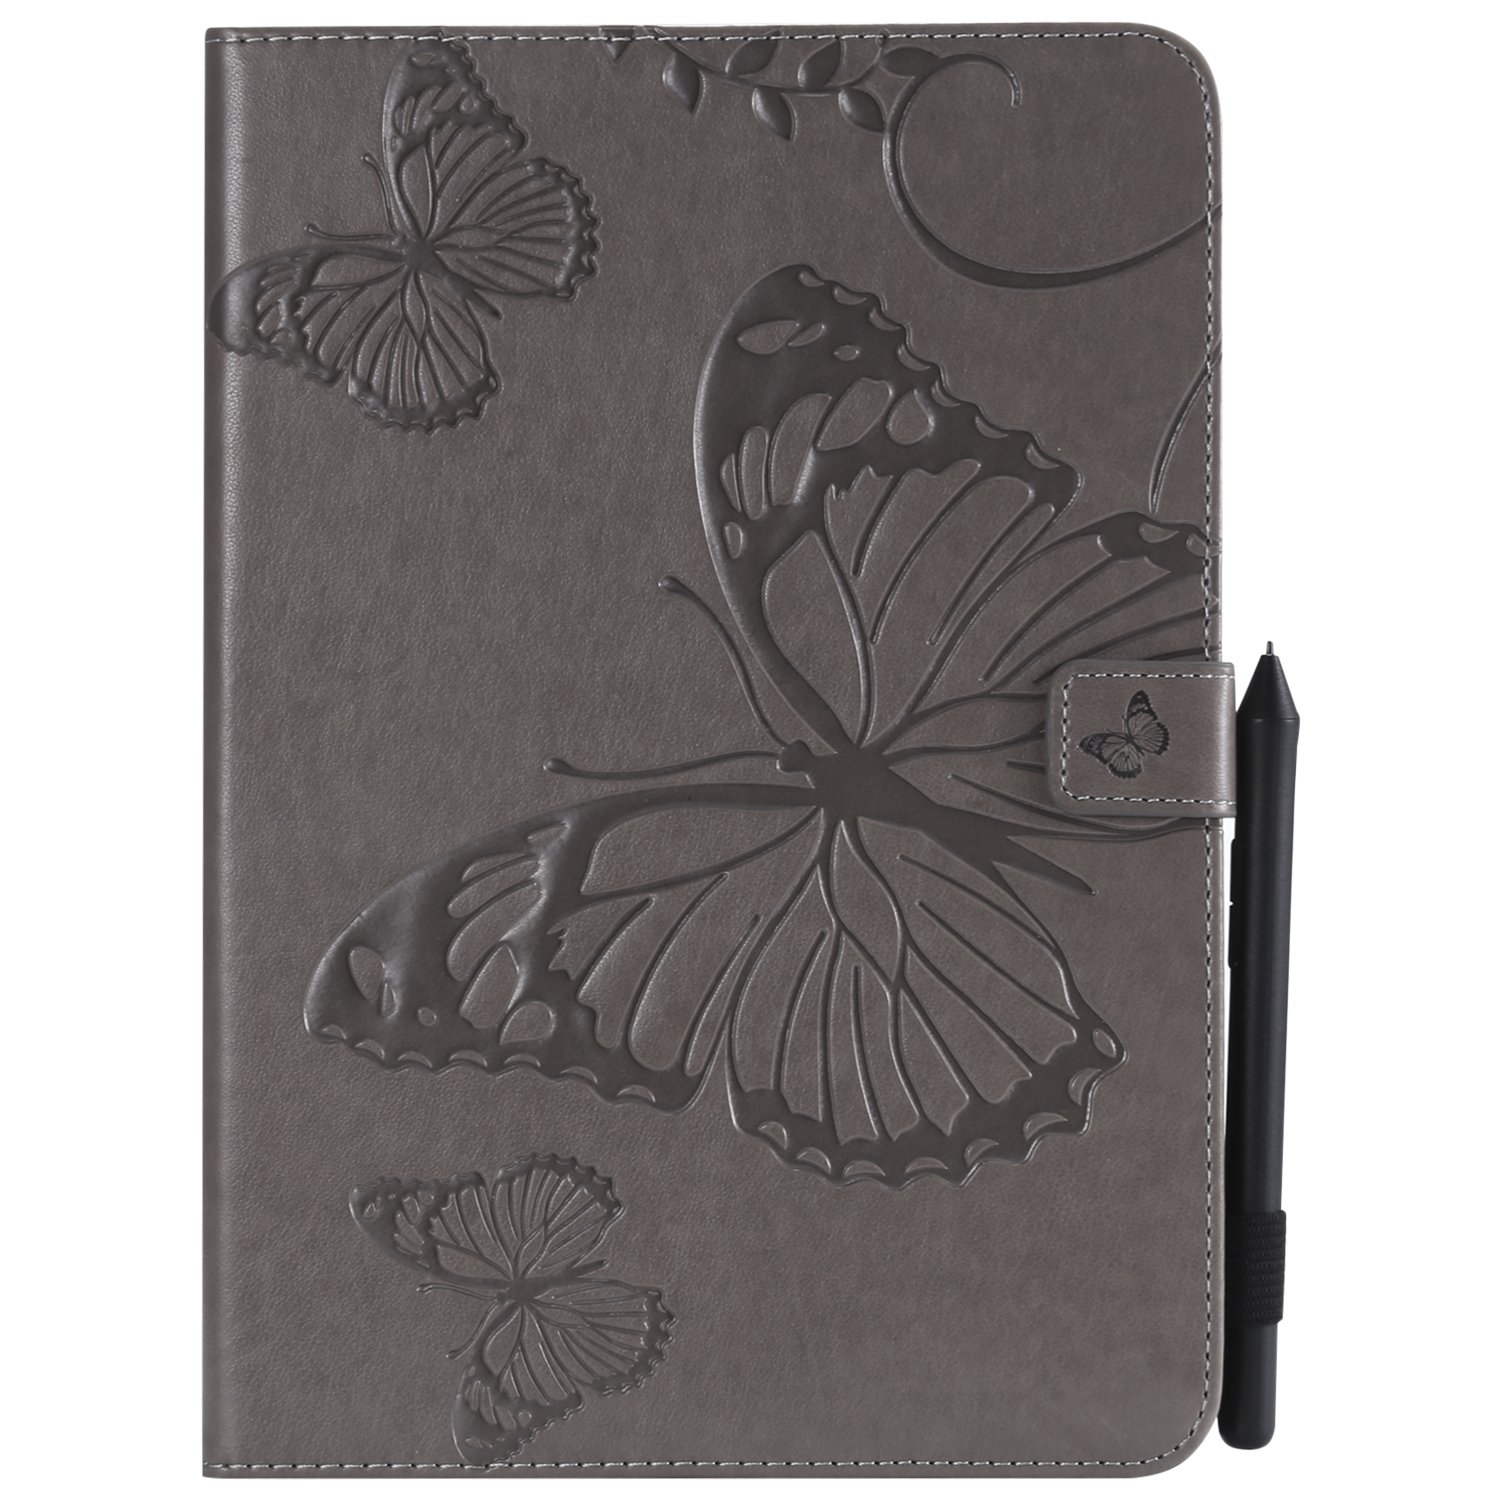 Bear Village Galaxy Tab a 9.7 Inch Case, Butterfly Embossed Anti Scratch Shell with Adjust Stand, Smart Stand PU Leather Case for Samsung Galaxy Tab a 9.7 Inch, Gray